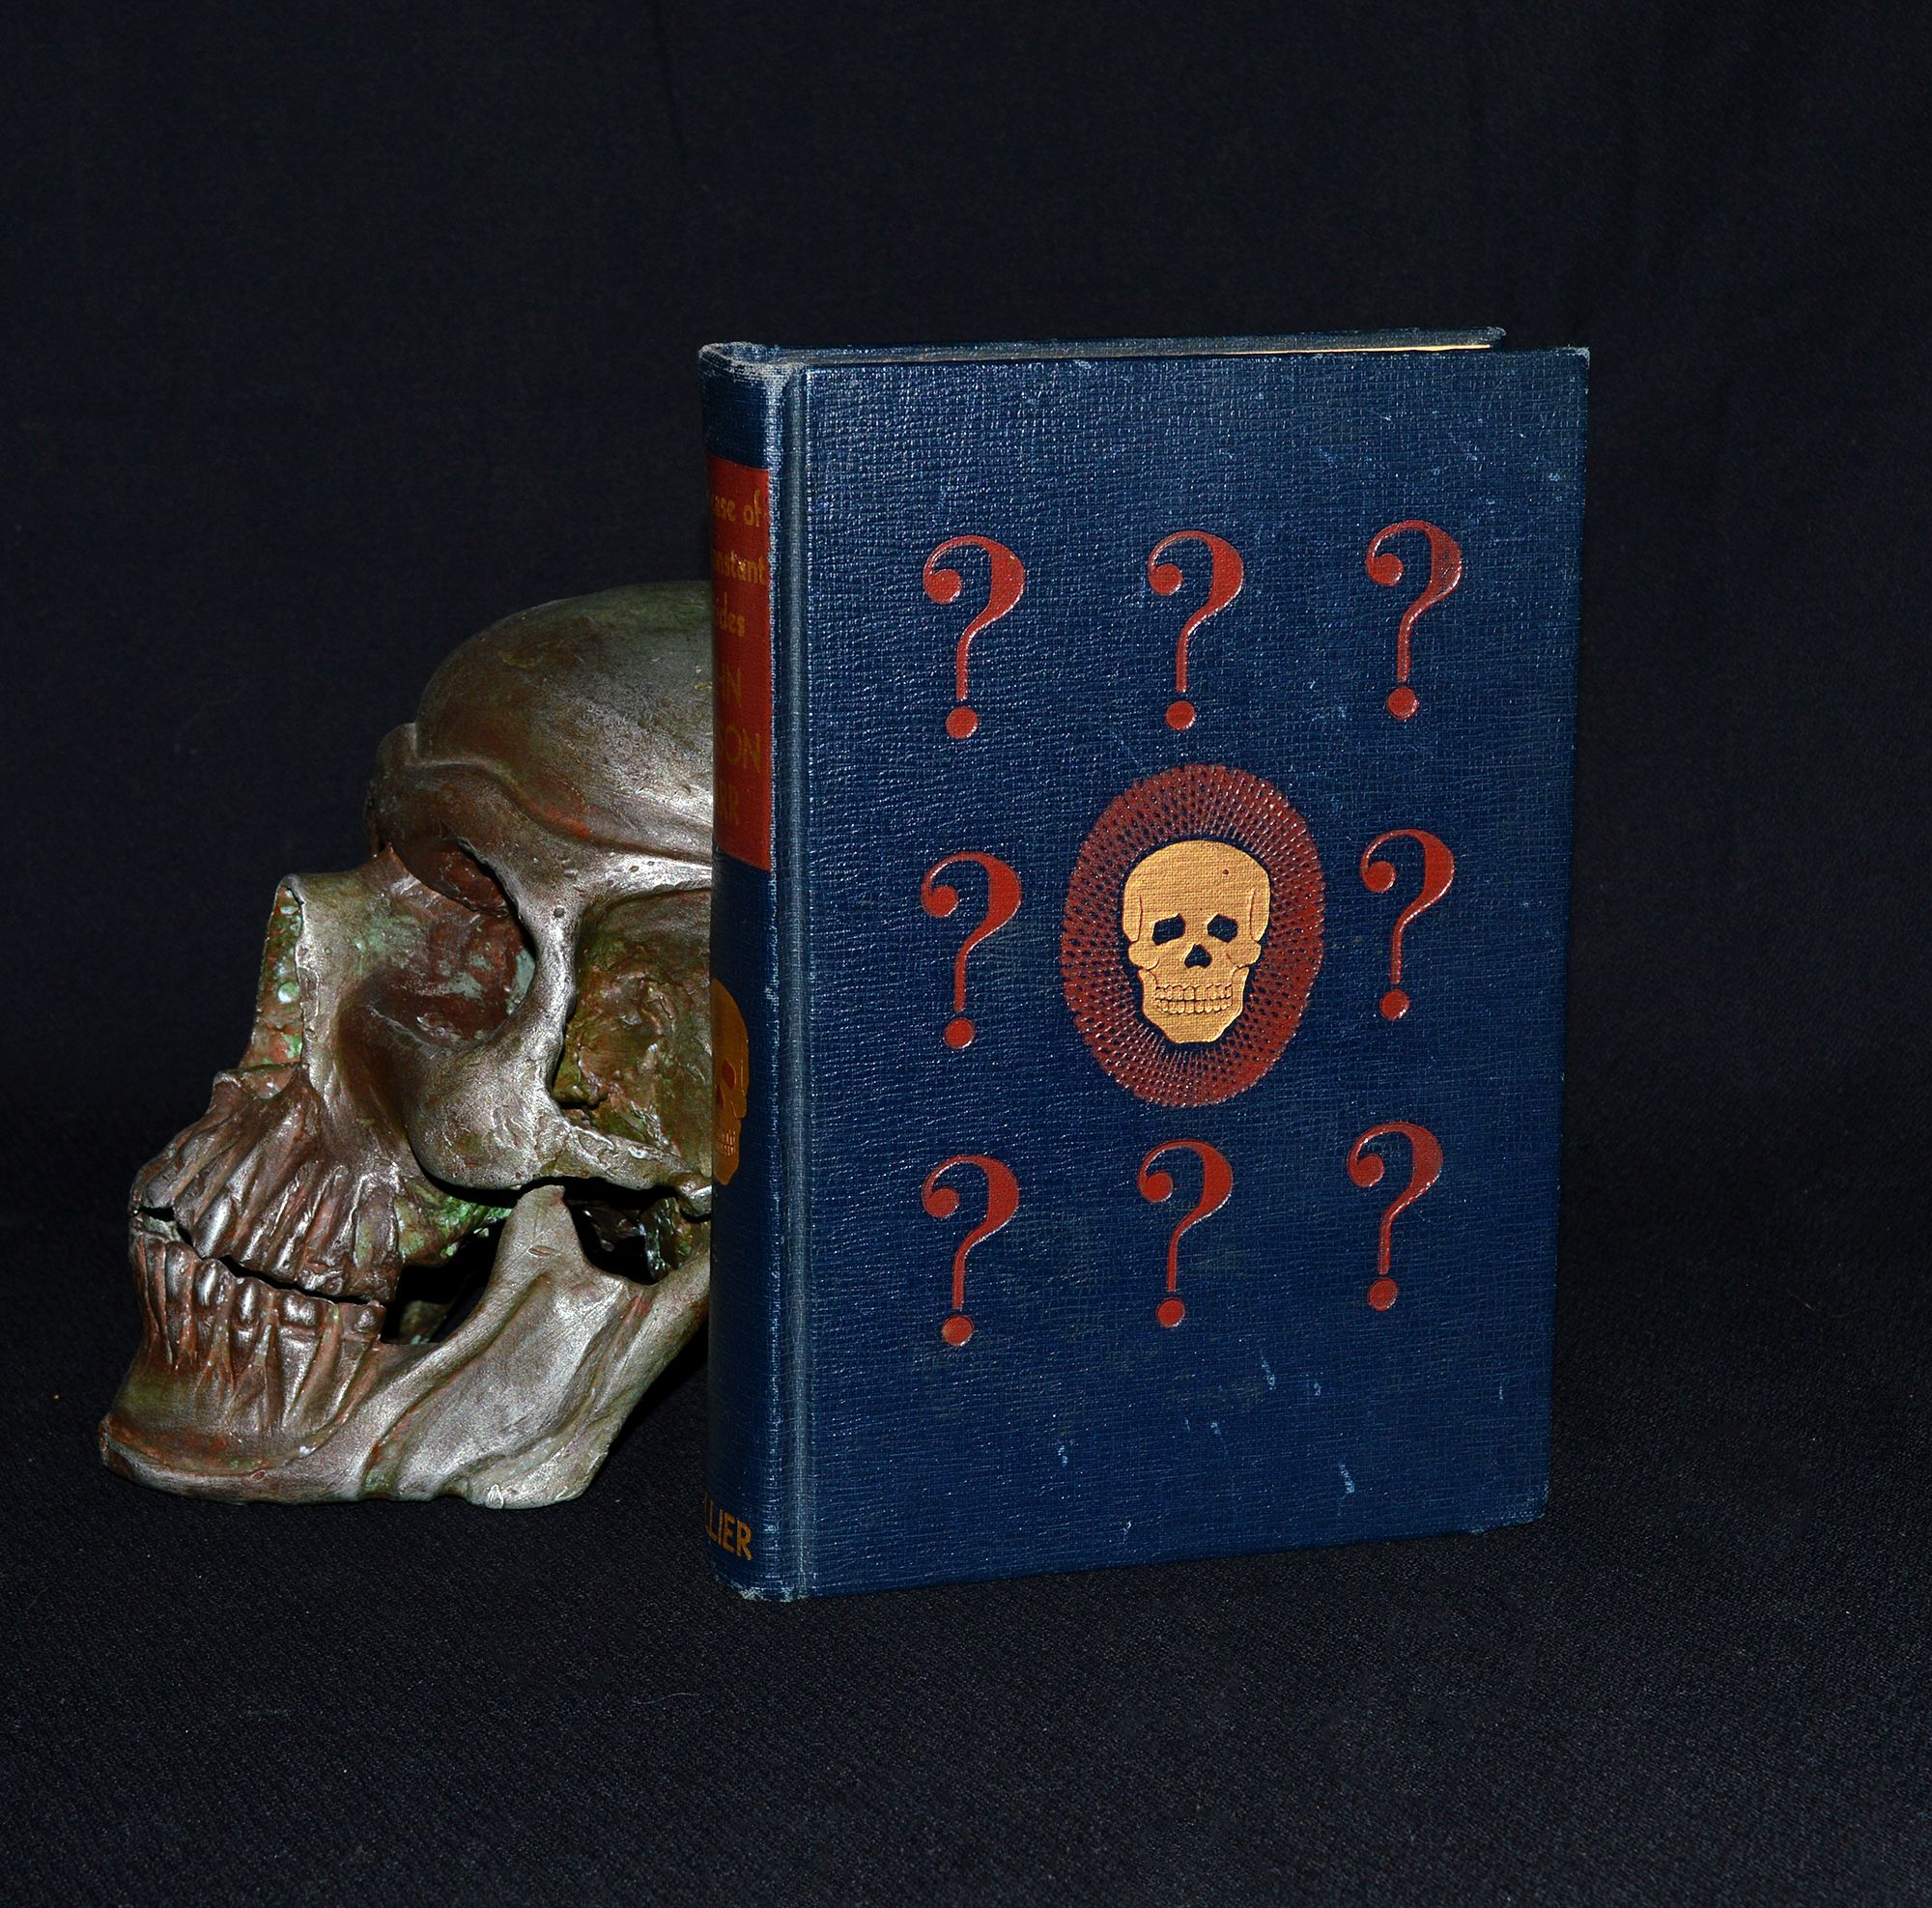 "This unusually bound book is an early 1941 edition of ""The Case of the Constant Suicides"" by John Dickinson Carr. A wonderfully obscure display piece. Carr's stories were focused on the detective / mystery / crime genres. It features unusual decorative covers with gilt skulls and blood red question marks scattered on dark blue cloth. Spine has gold titling and another golden skull with red eyes. Etsy.com/shop/CosmicLibrary"